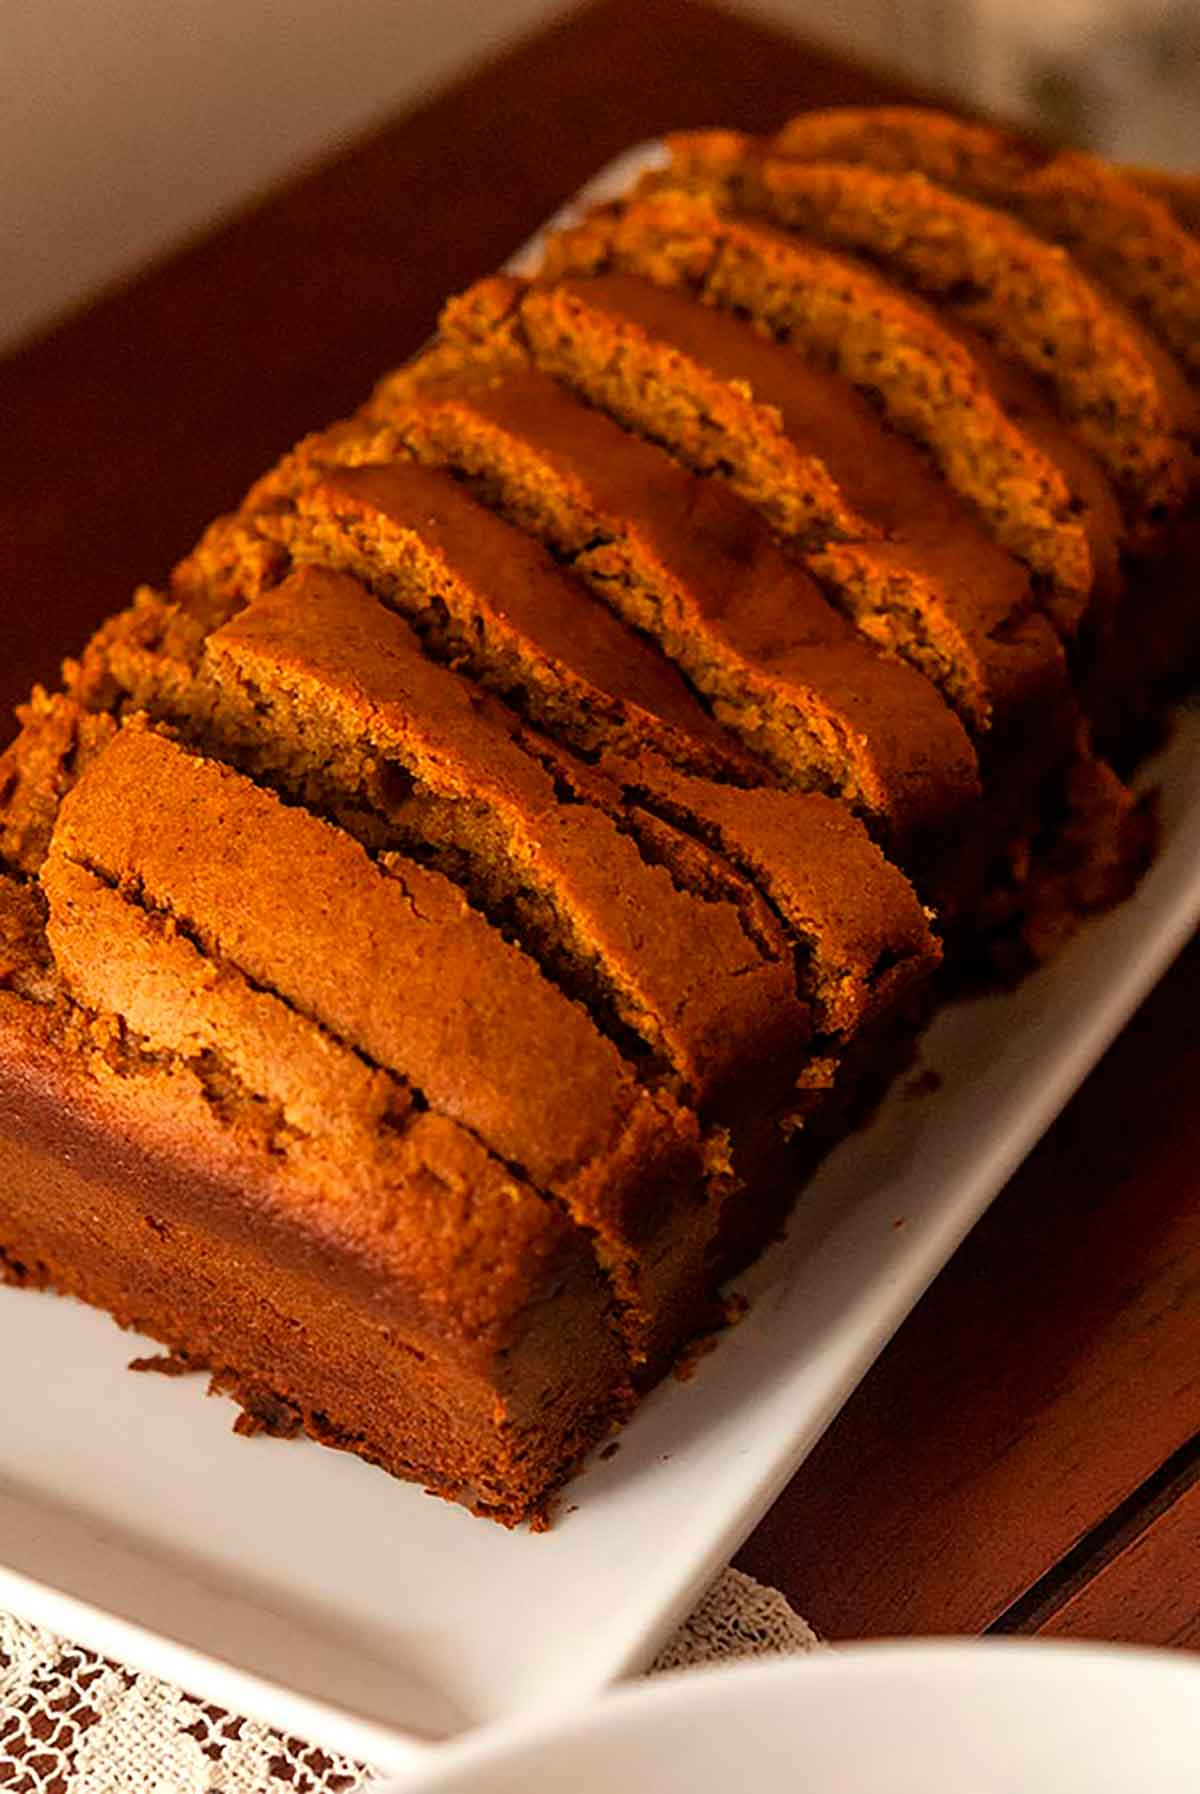 A sliced loaf of pumpkin bread on a plate.